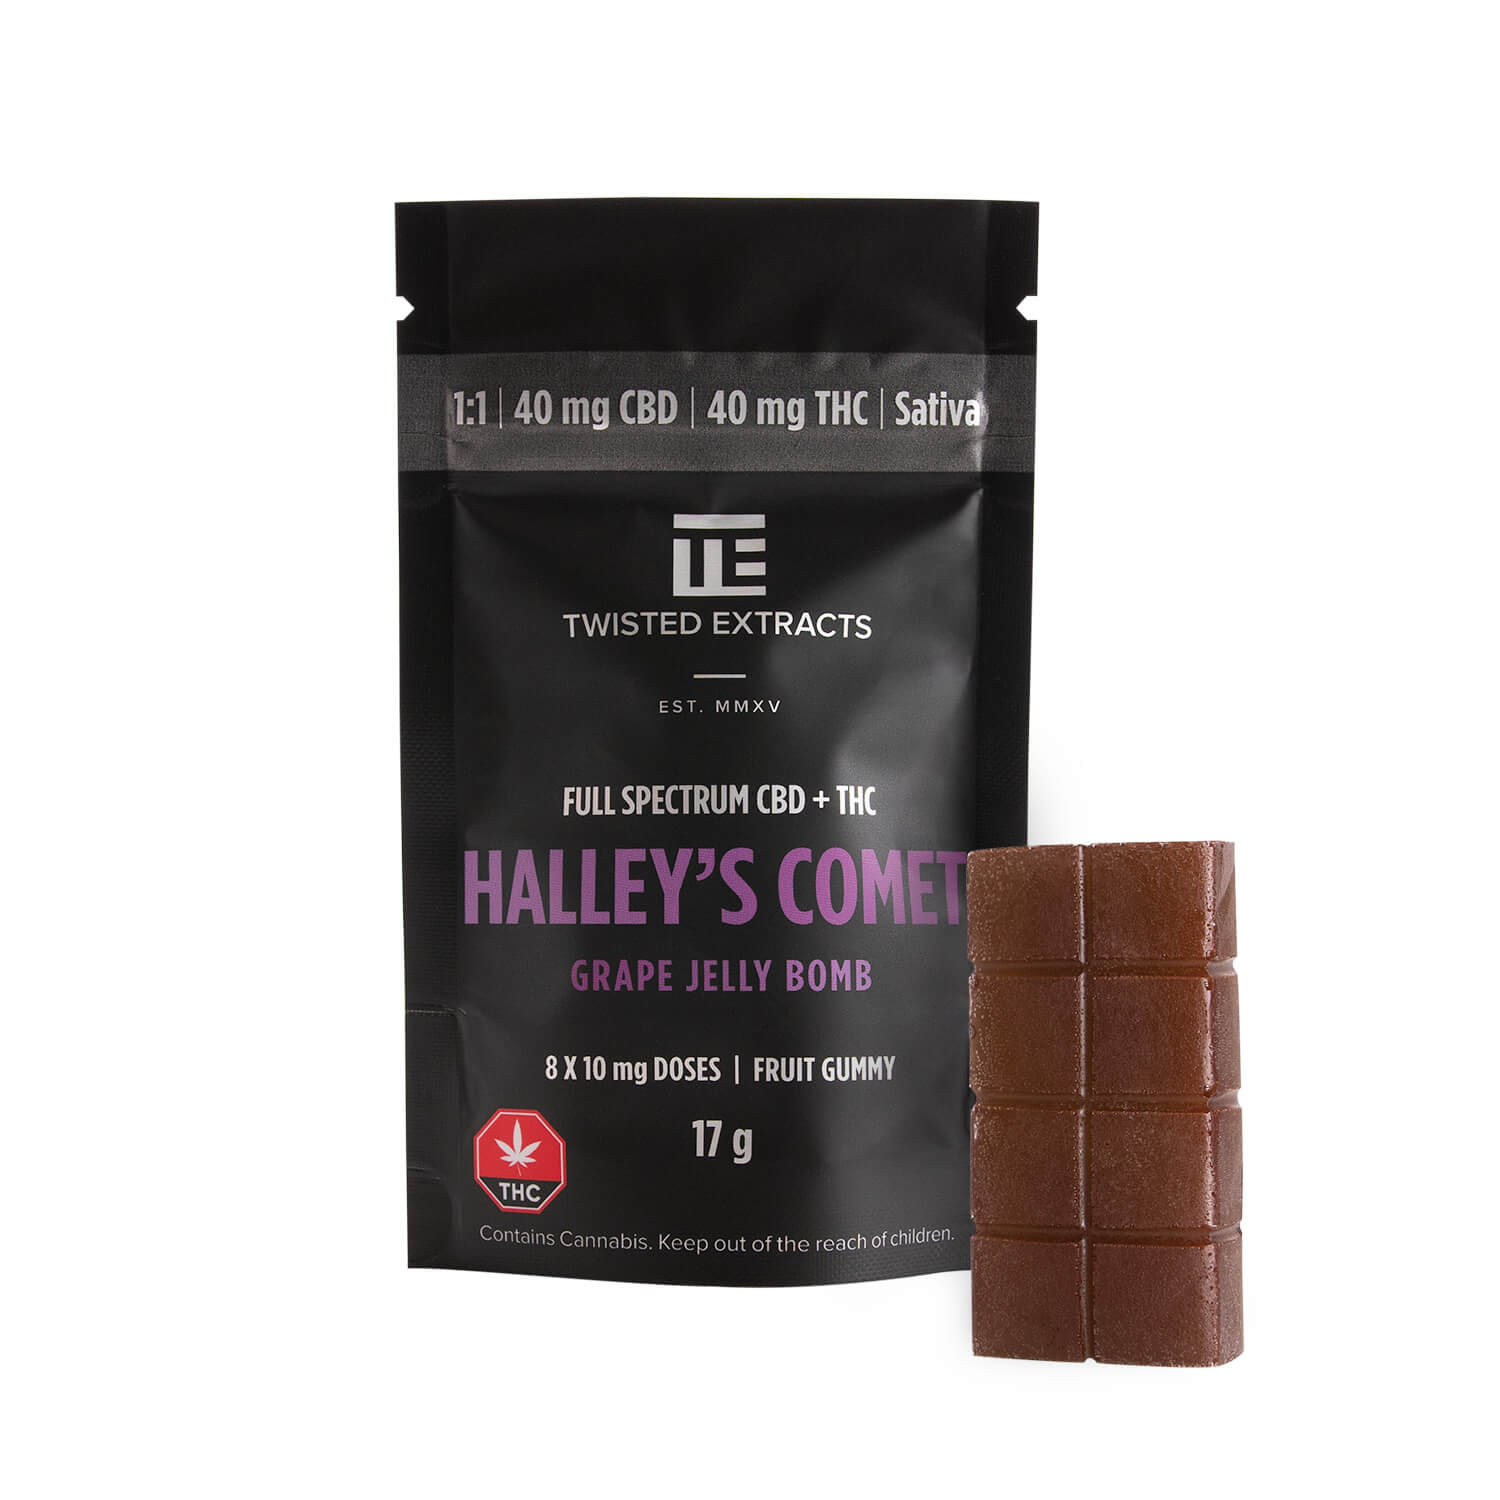 Halley's Comet Grape Jelly Bomb   My Pure Canna   Weed Edibles